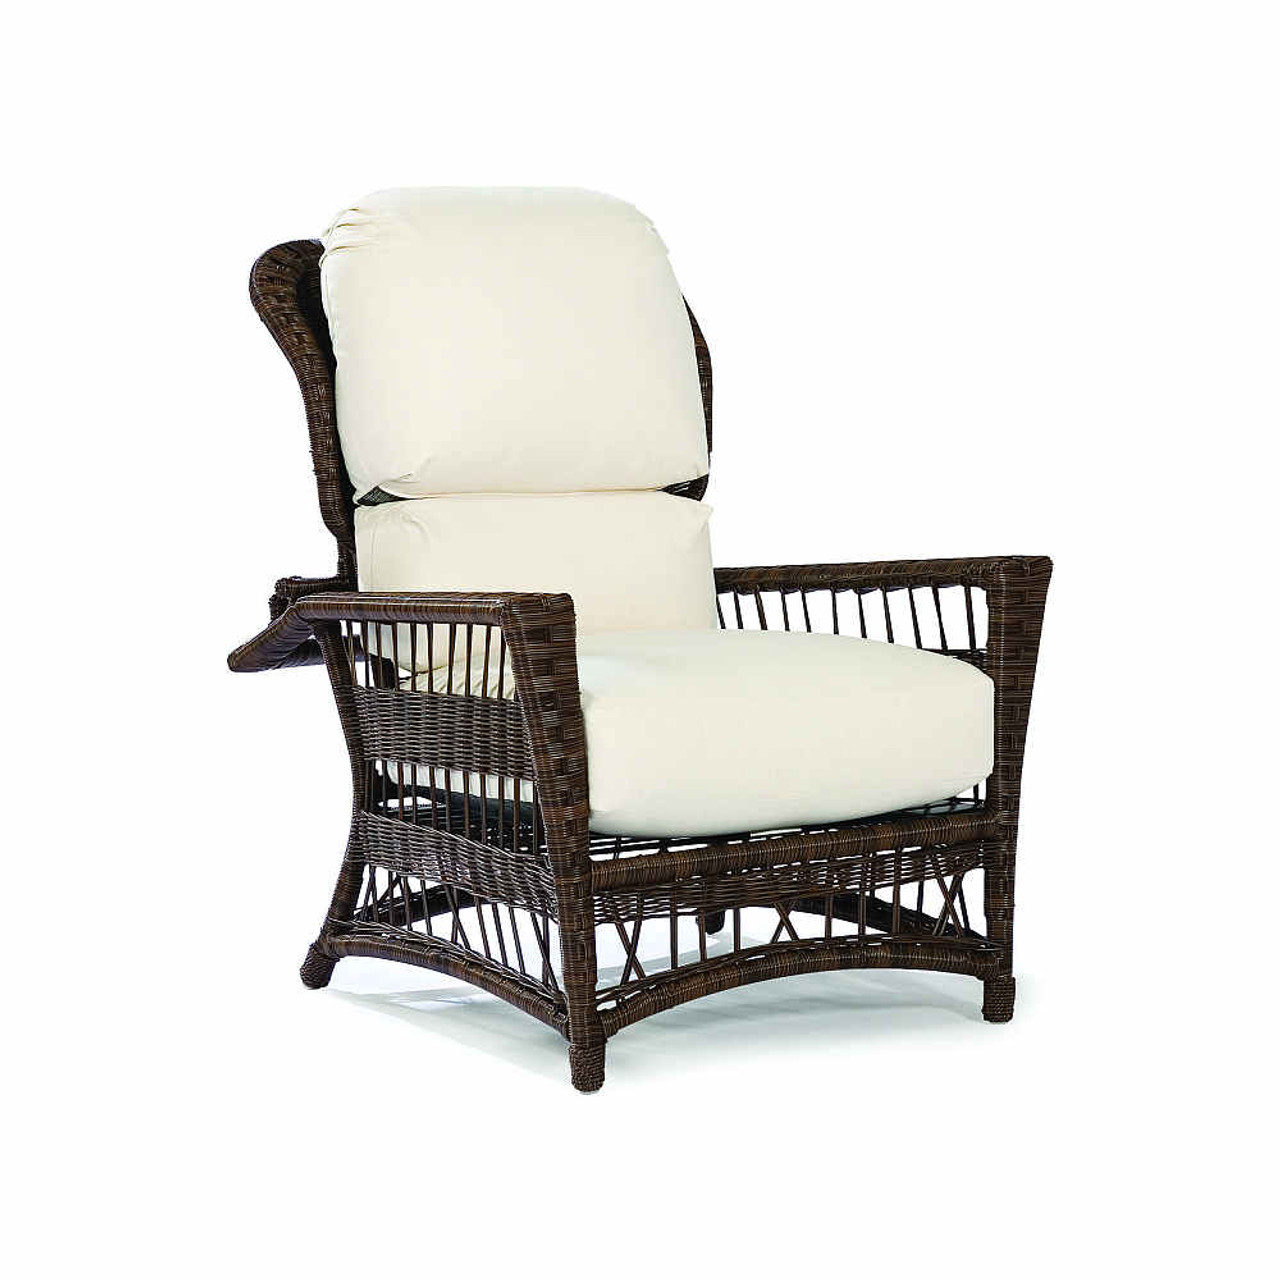 Lane venture bar harbor collection morris chair